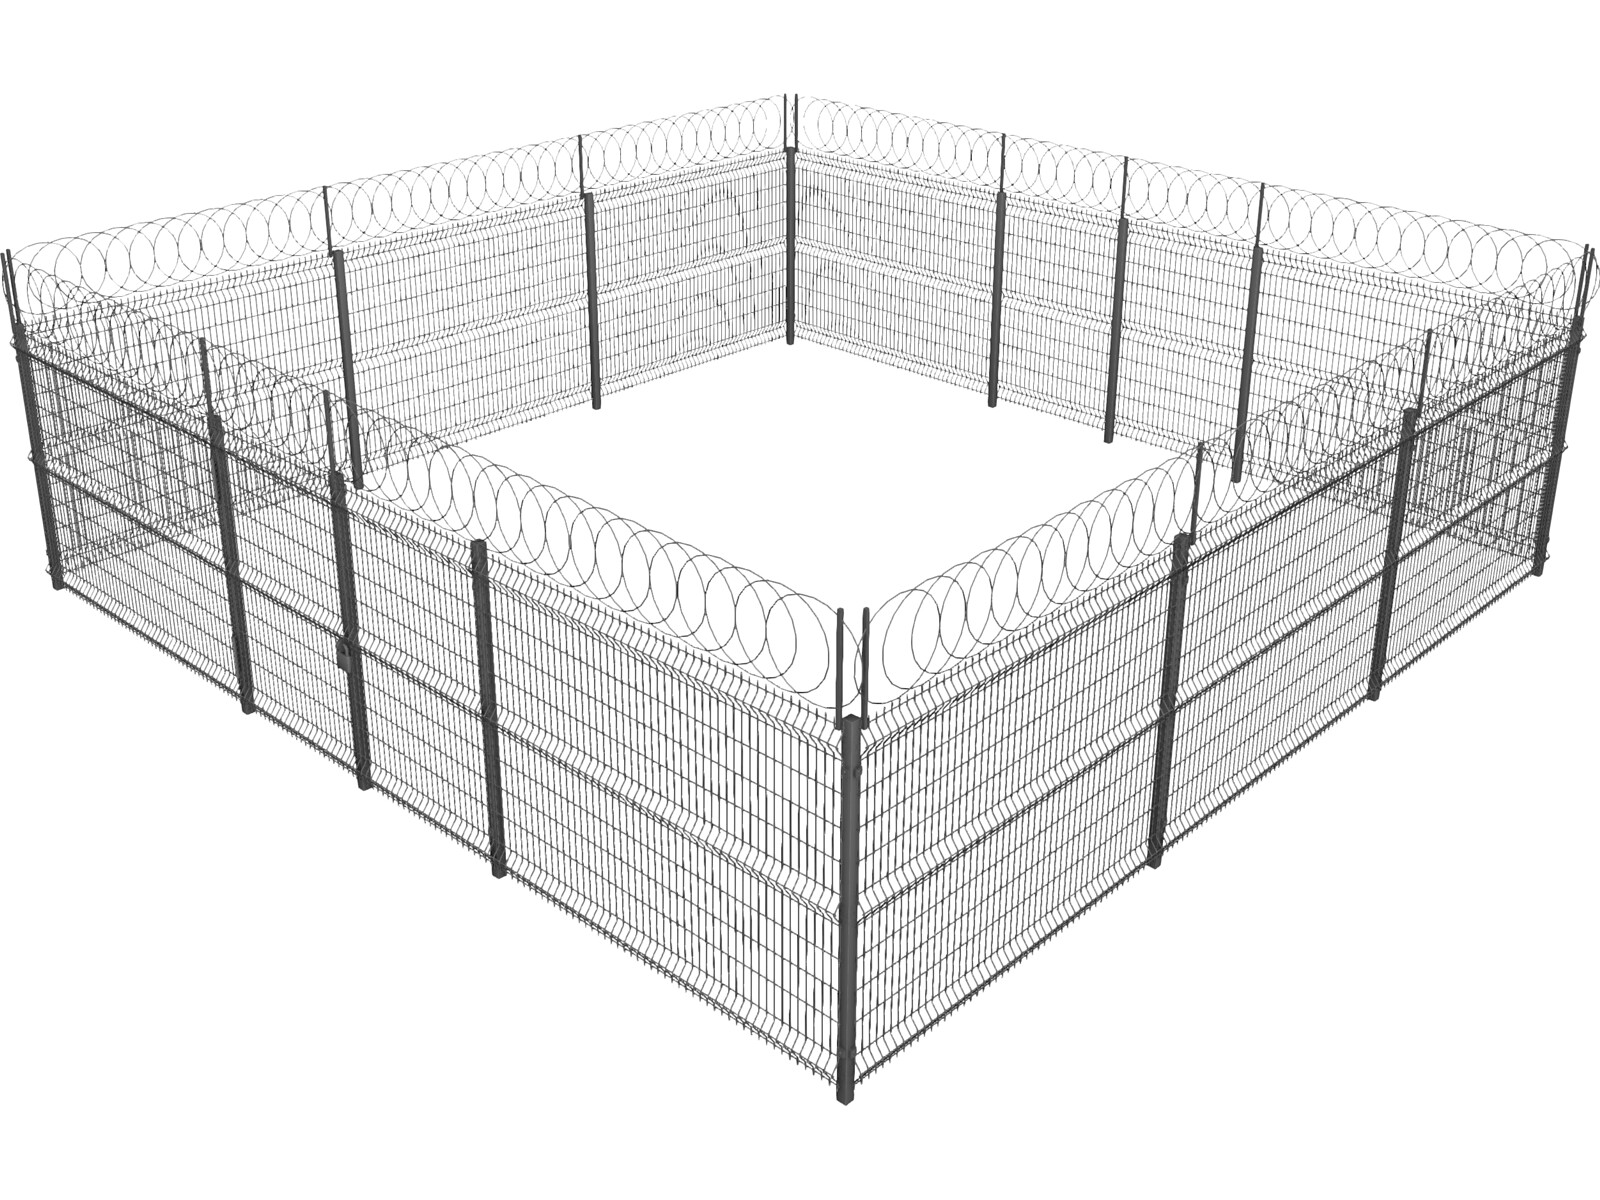 Metallic fence 3d model 3d cad browser for 3d fence